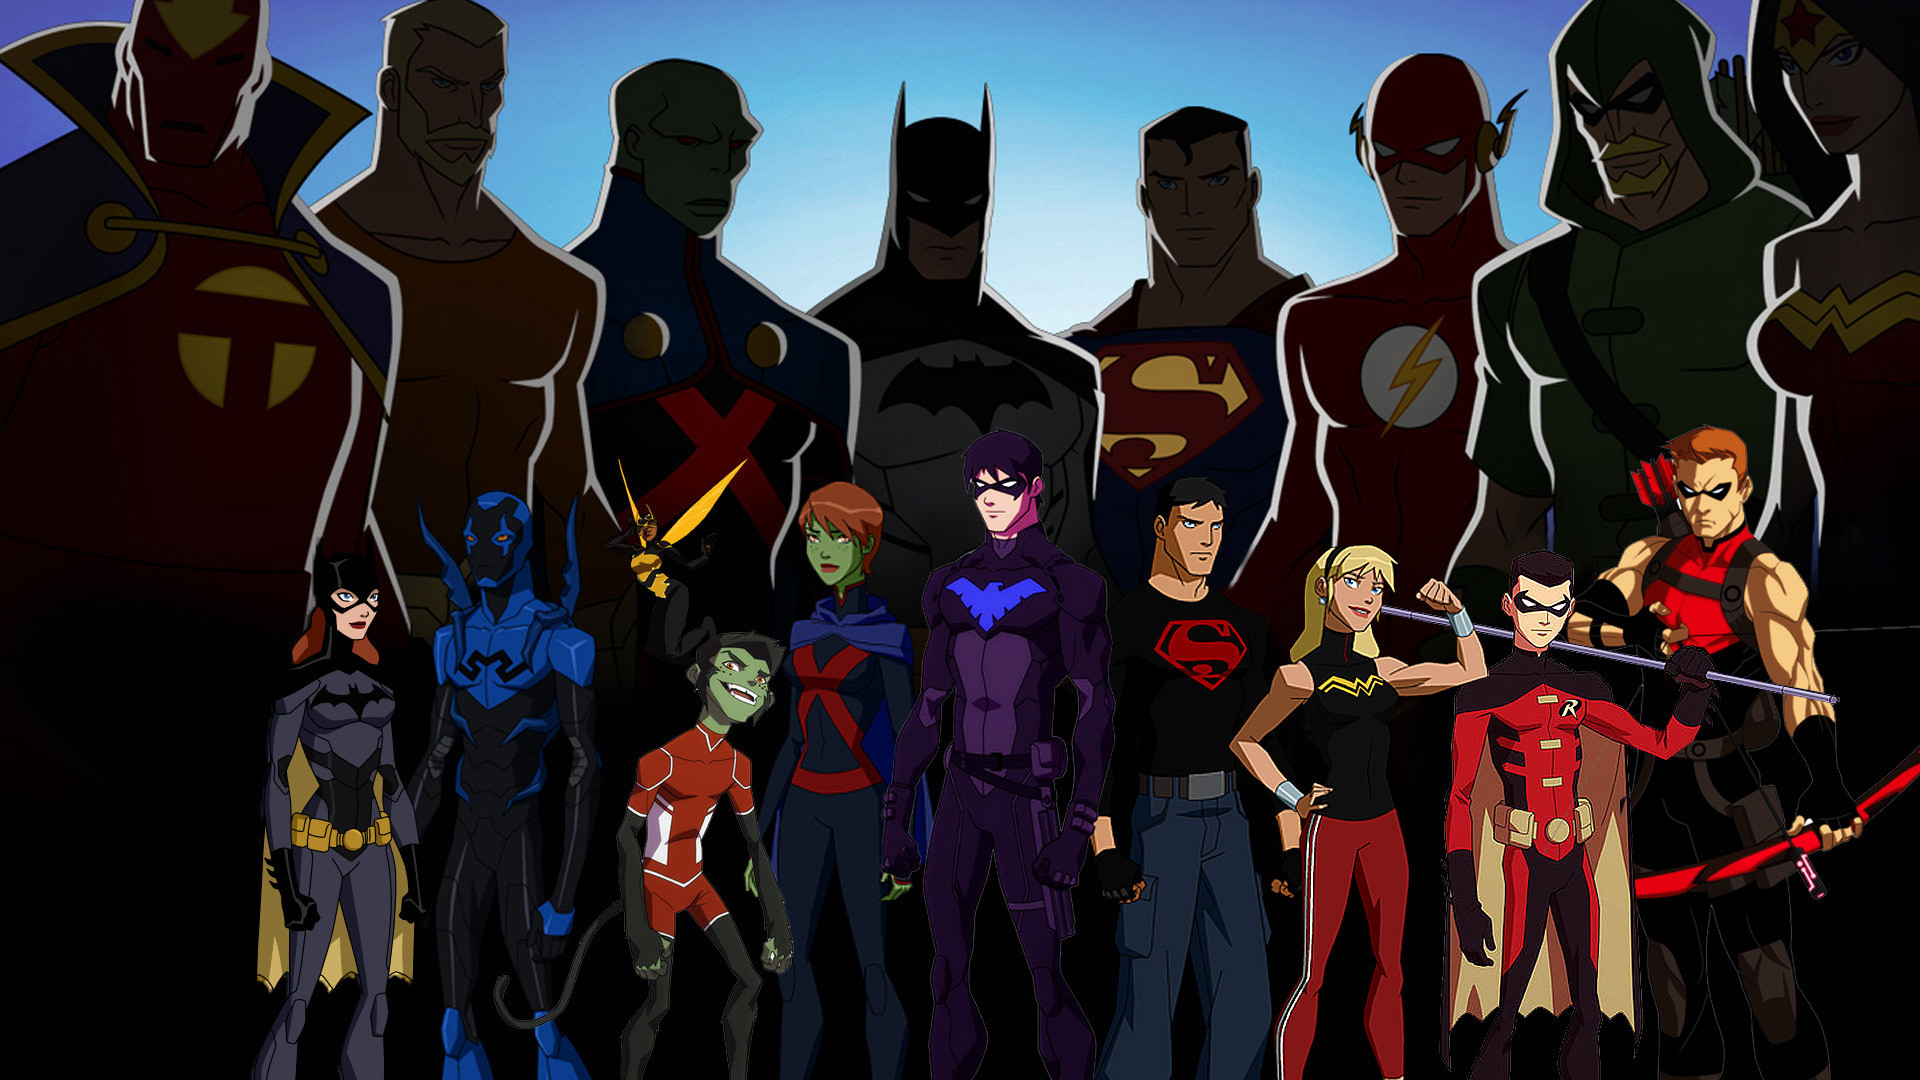 1920x1080 Cartoon - Young Justice Red Tornado Aquaman Martian Manhunter Batman  Superman Flash Green Arrow Batgirl Blue